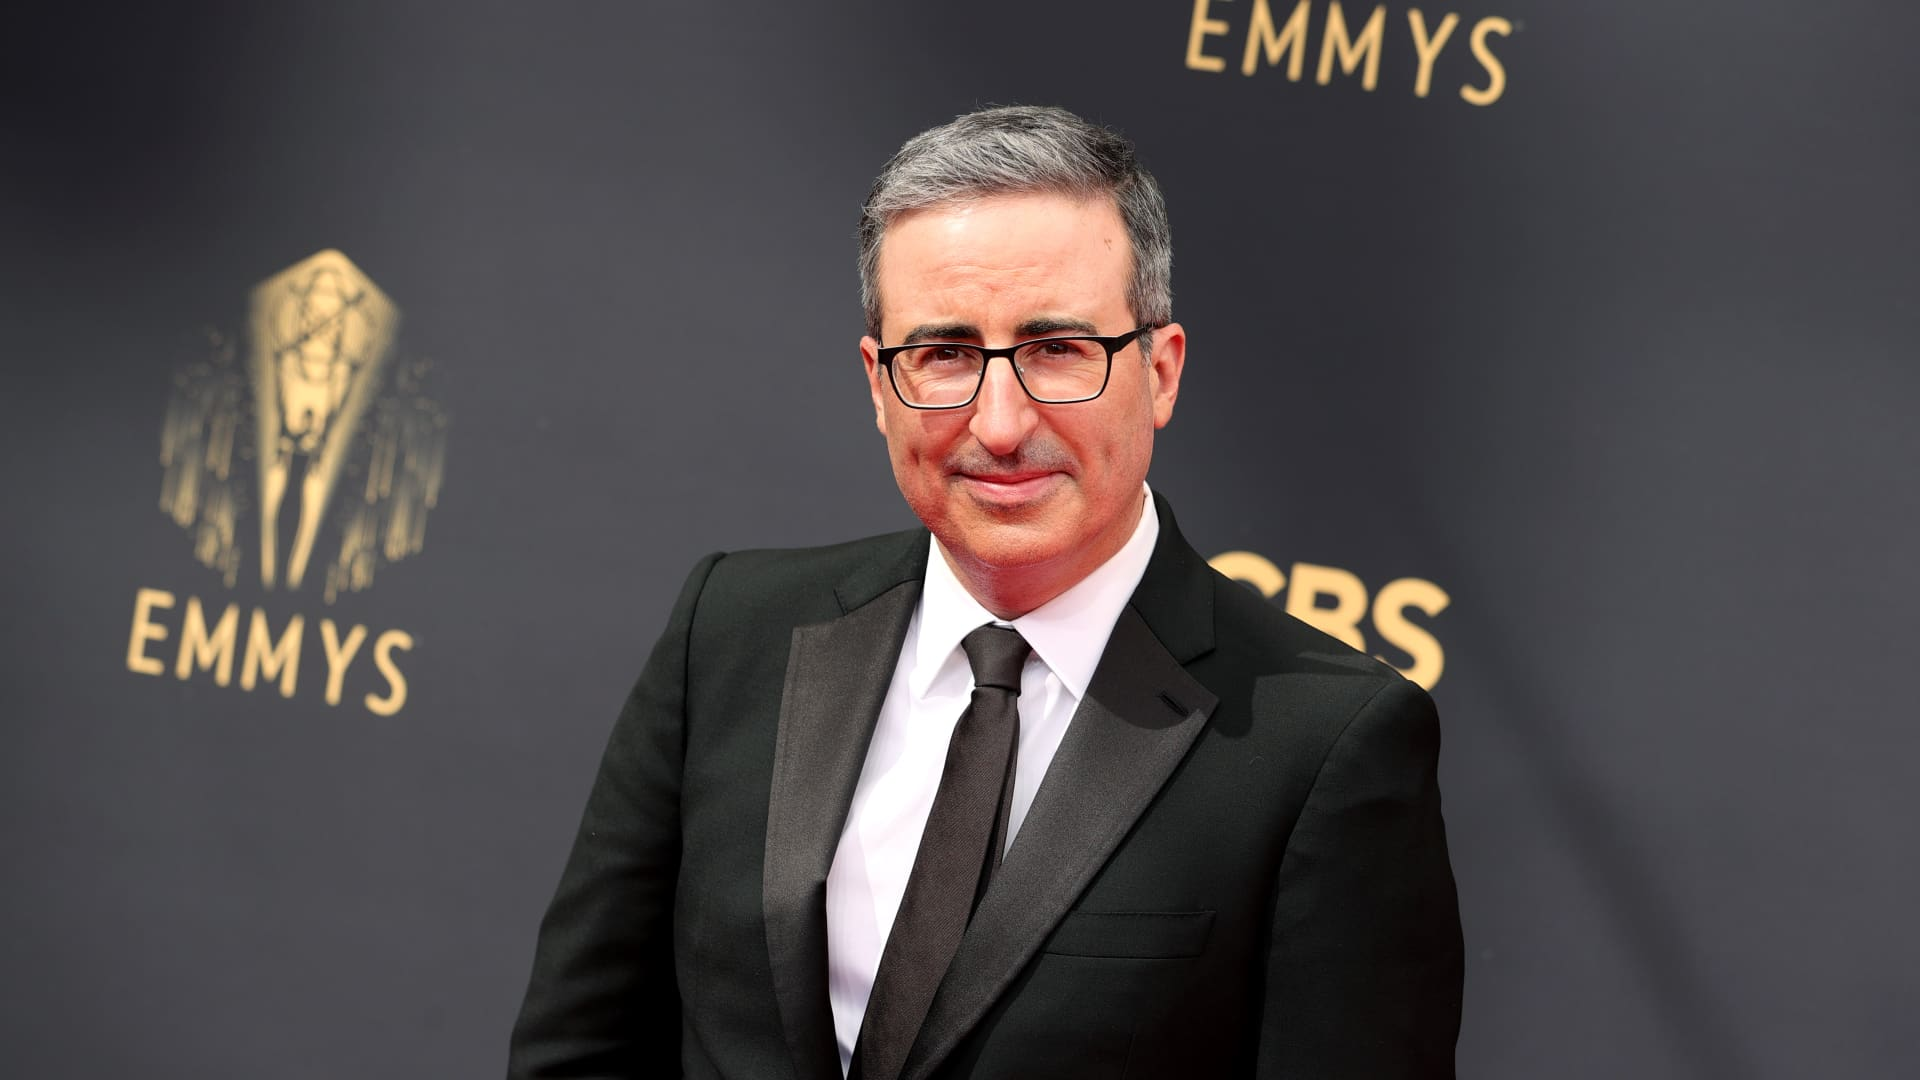 John Oliver attends the 73rd Primetime Emmy Awards at L.A. LIVE on September 19, 2021 in Los Angeles, California.